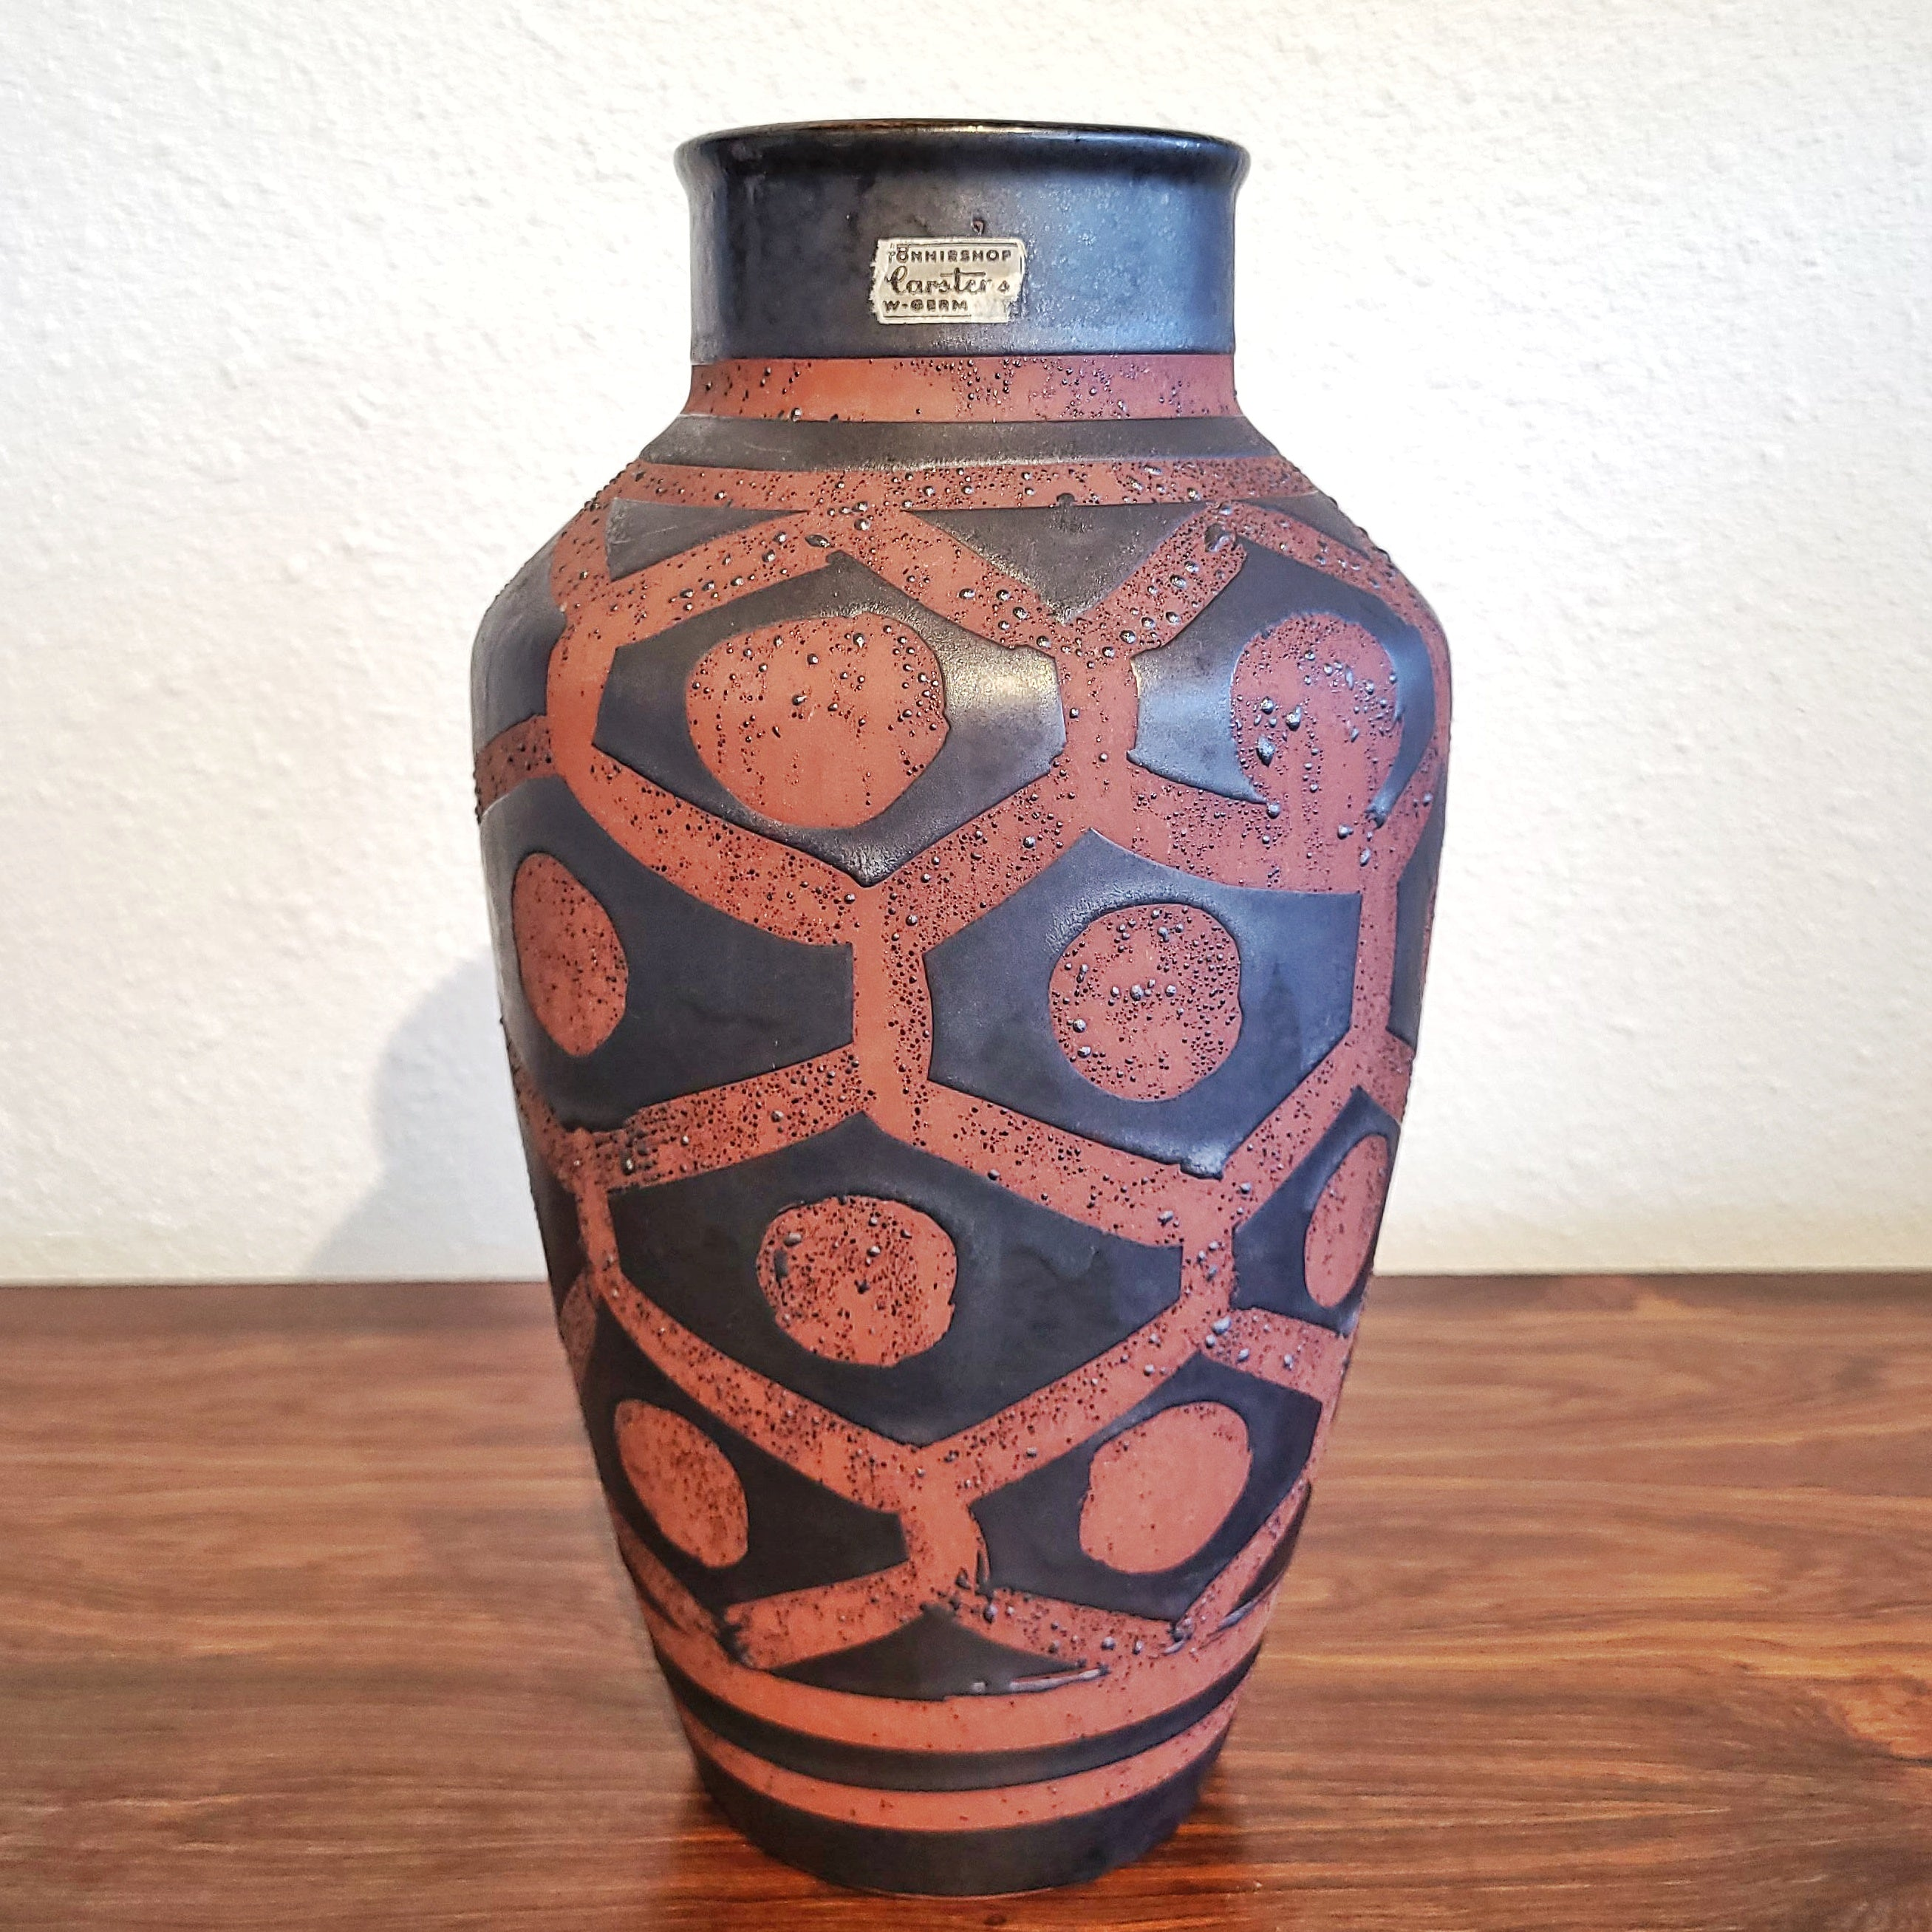 CARSTENS TÖNNIESHOF RUSTY ORANGE AND GUNMETAL 'ANKARA' VASE Nr. 1233/34